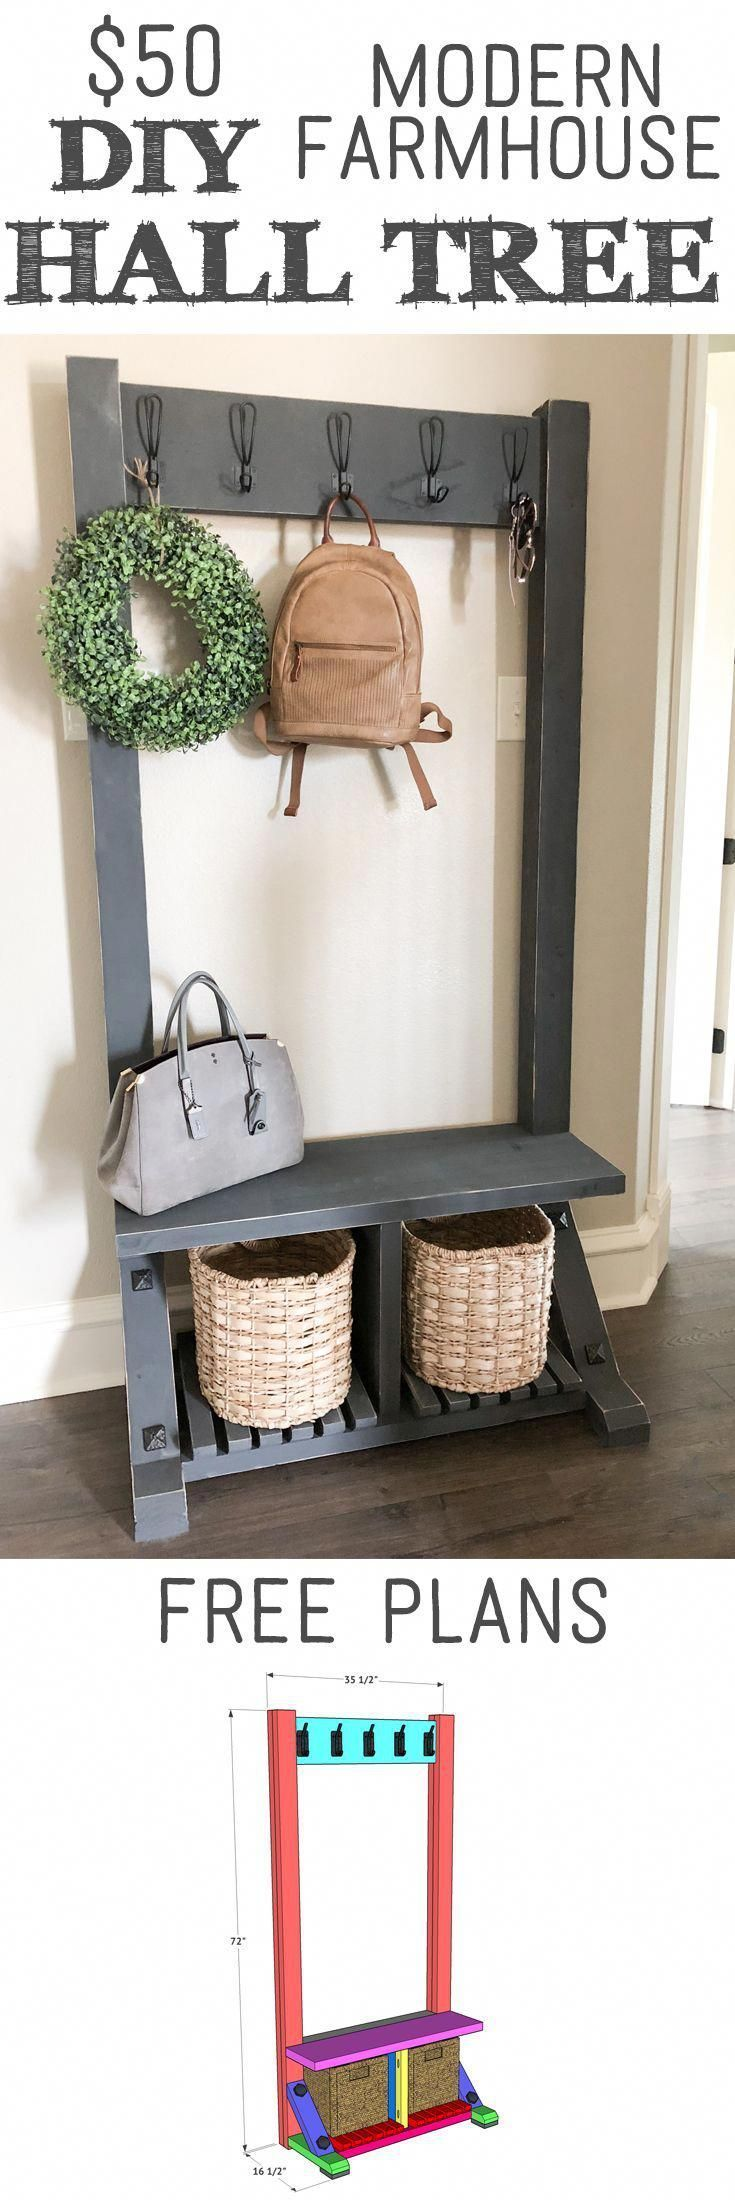 DIY Modern Hall Tree for only $50   Modern hall trees ...